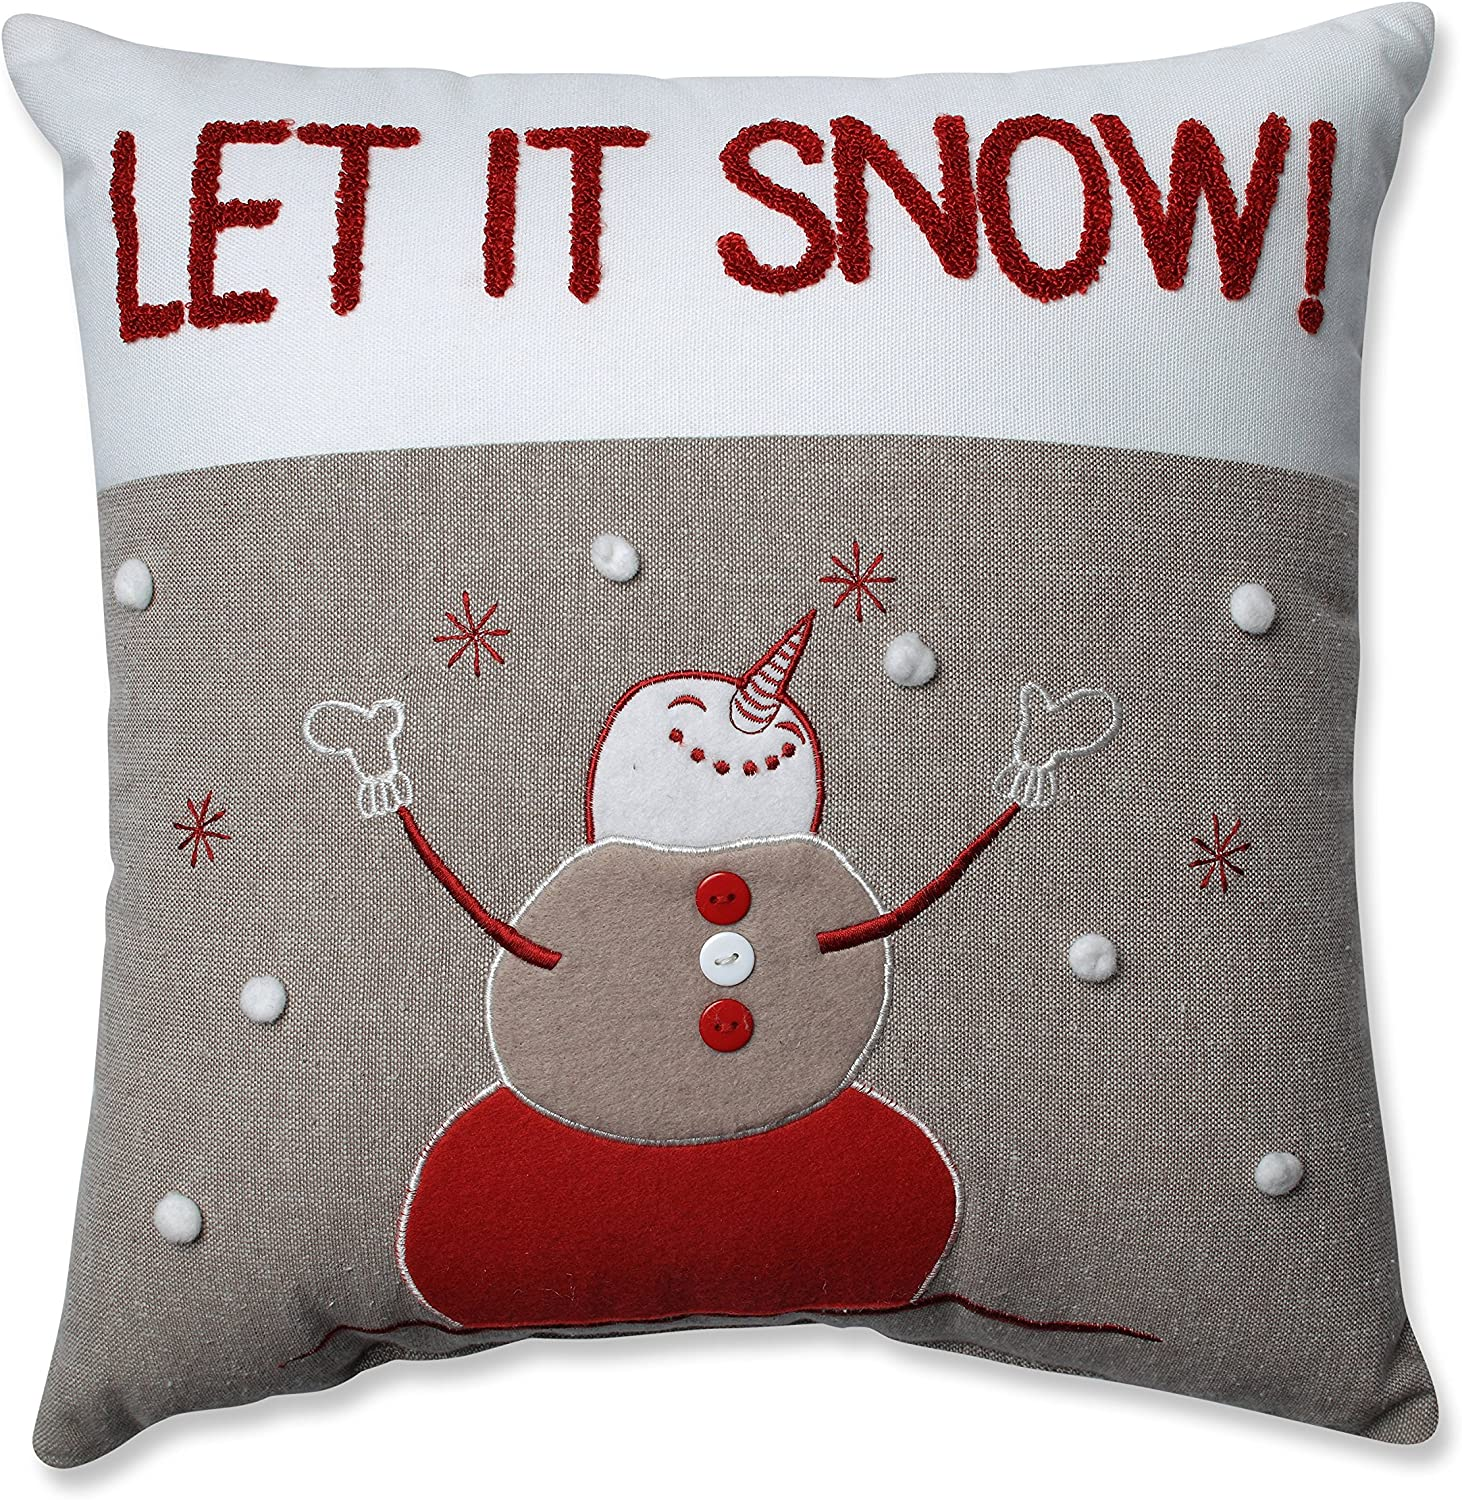 Amazon Com Pillow Perfect Country Home Snowman Throw Pillow Home Kitchen